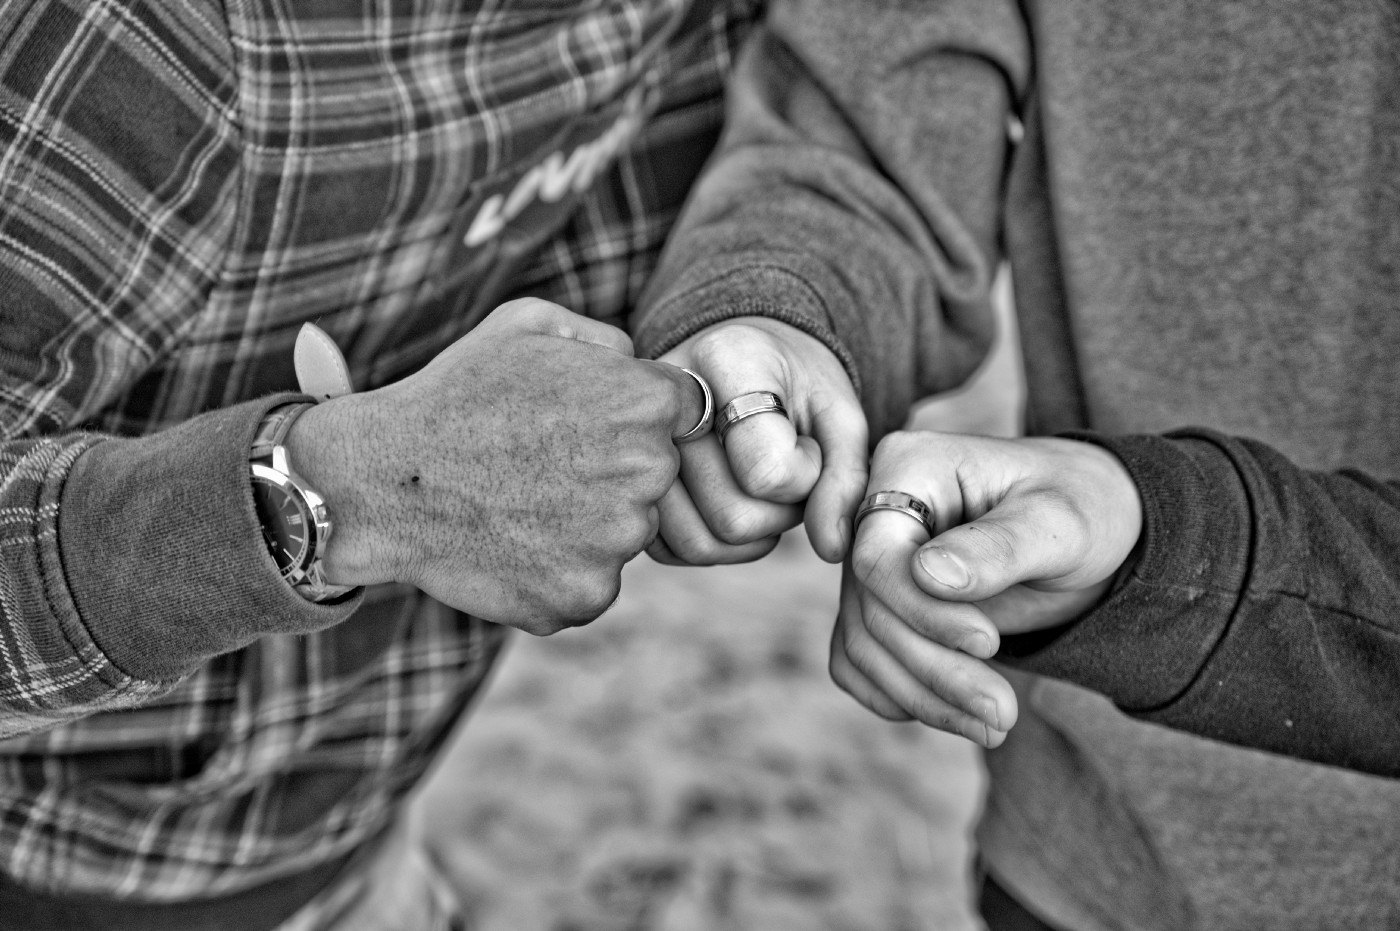 Black and white photo of three people bumping their fists.